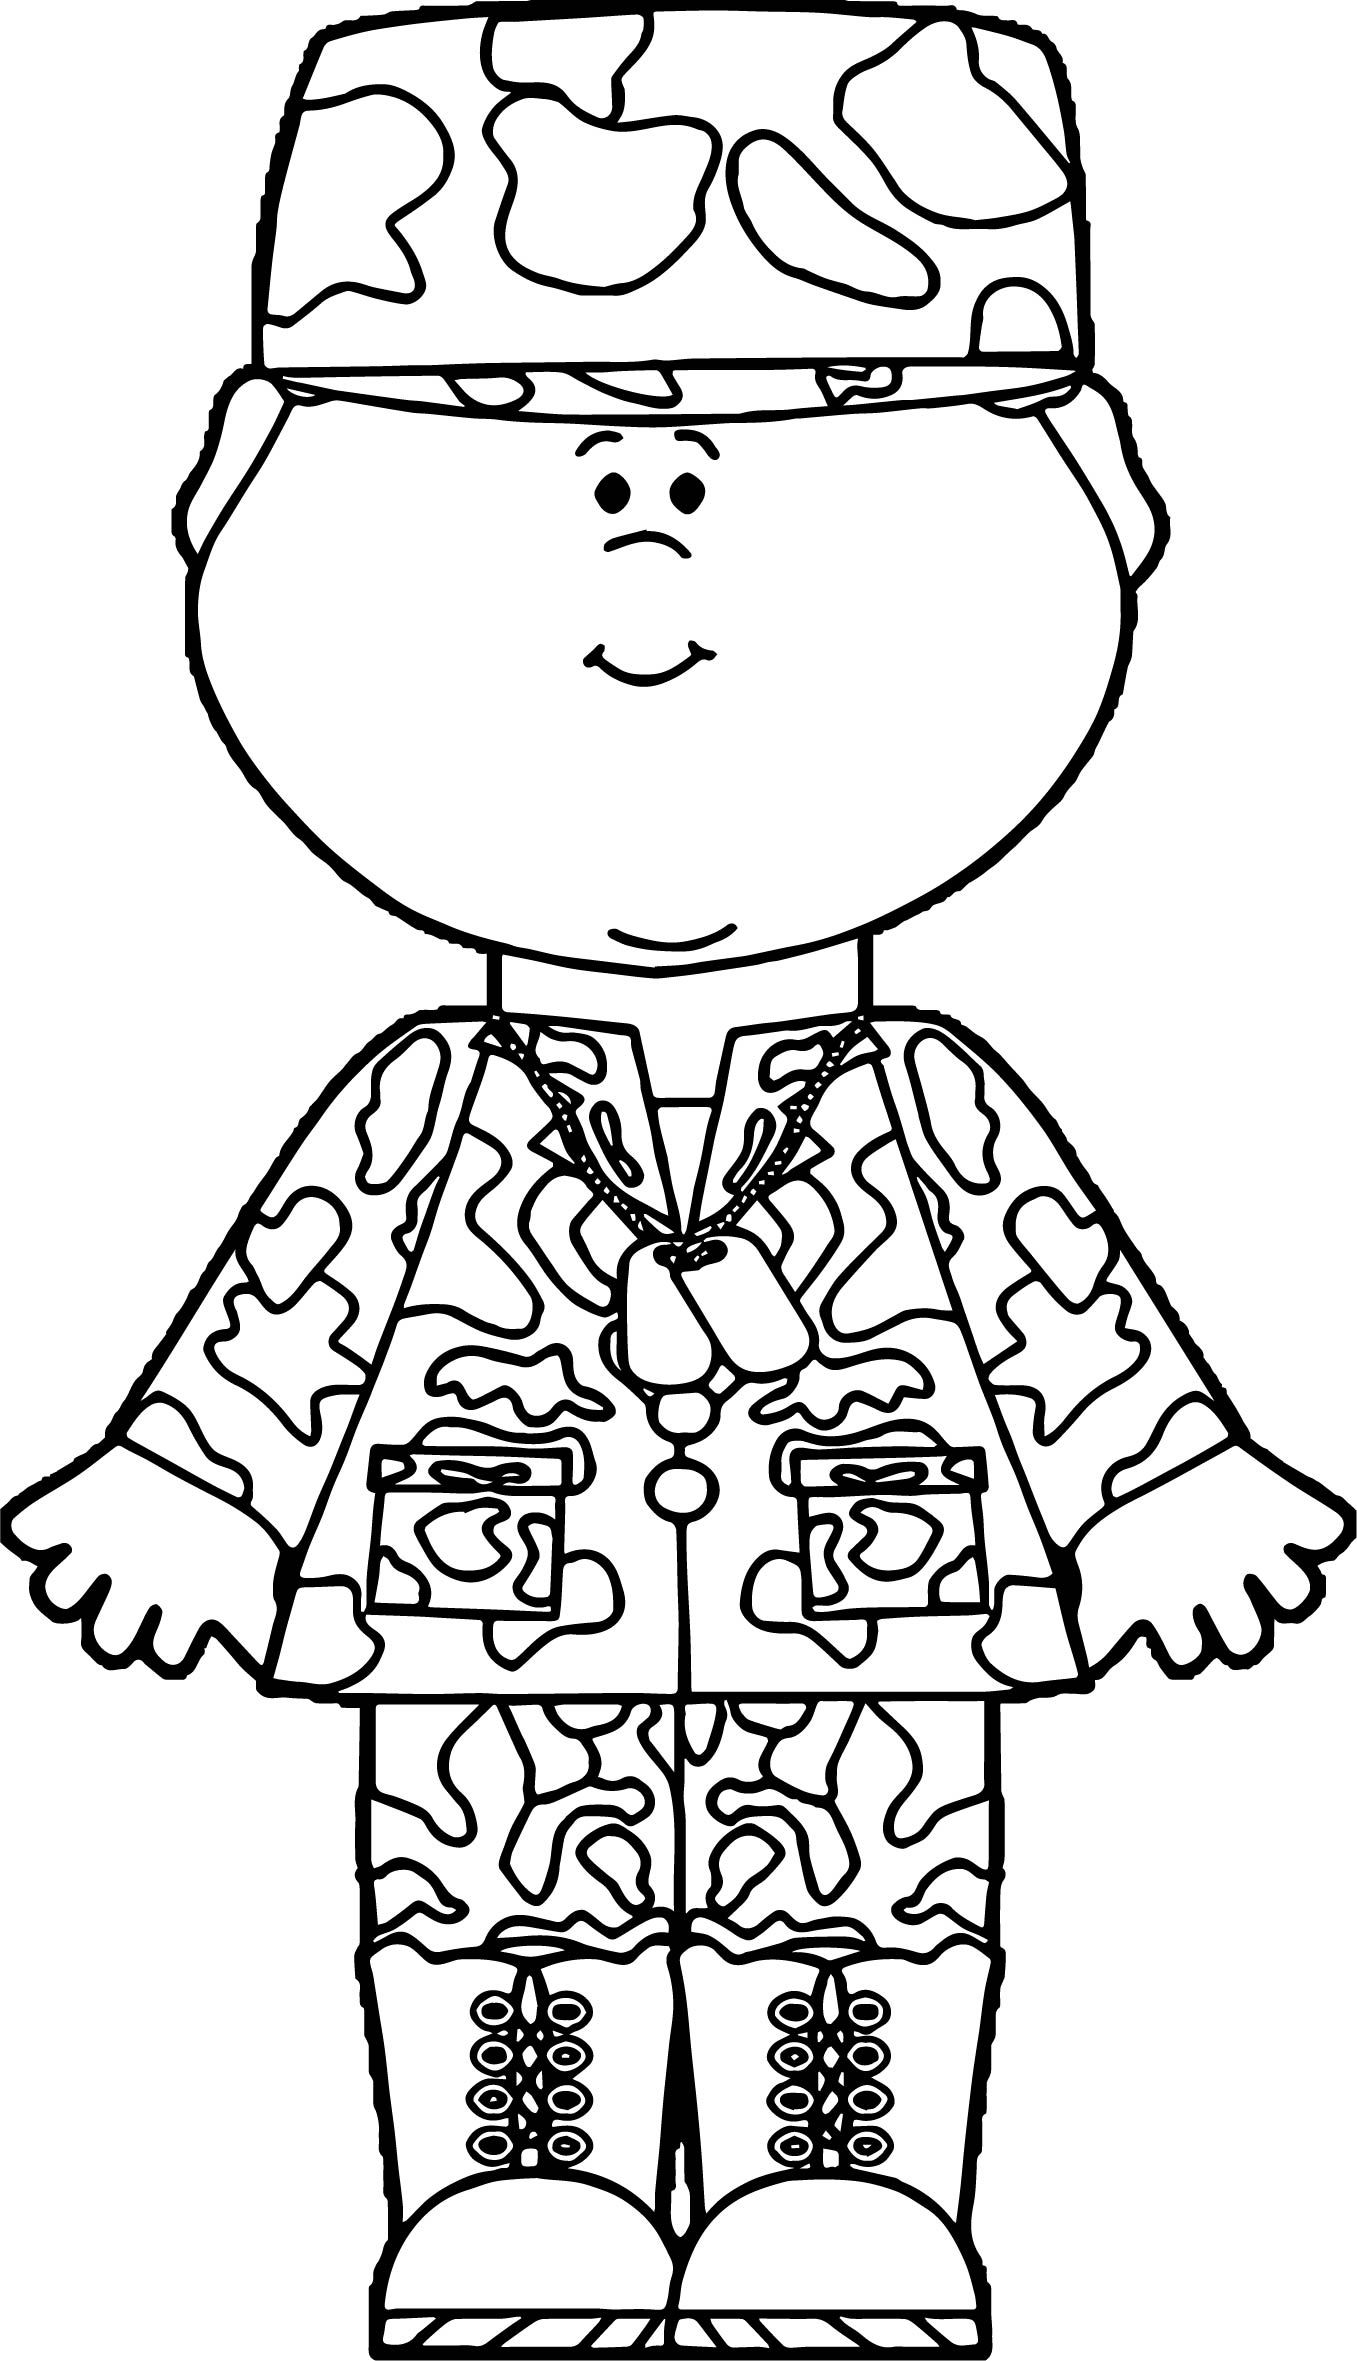 Cool Boy Kids Soldier Coloring Page Coloring Pages For Boys